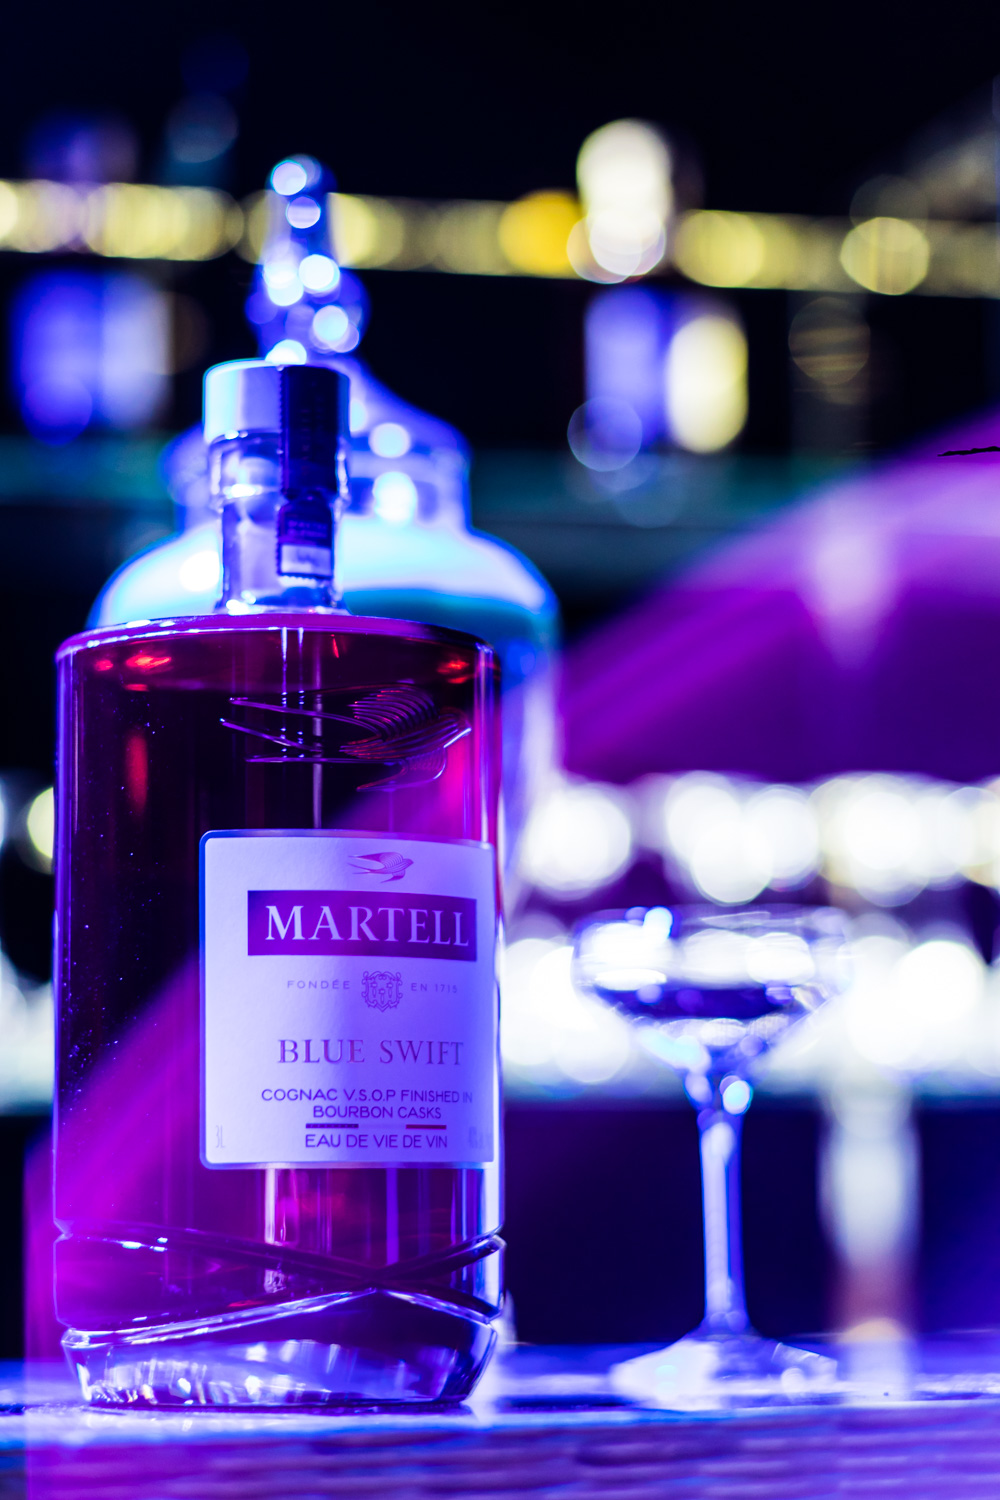 Martell / BLUE SWIFT Los Angeles